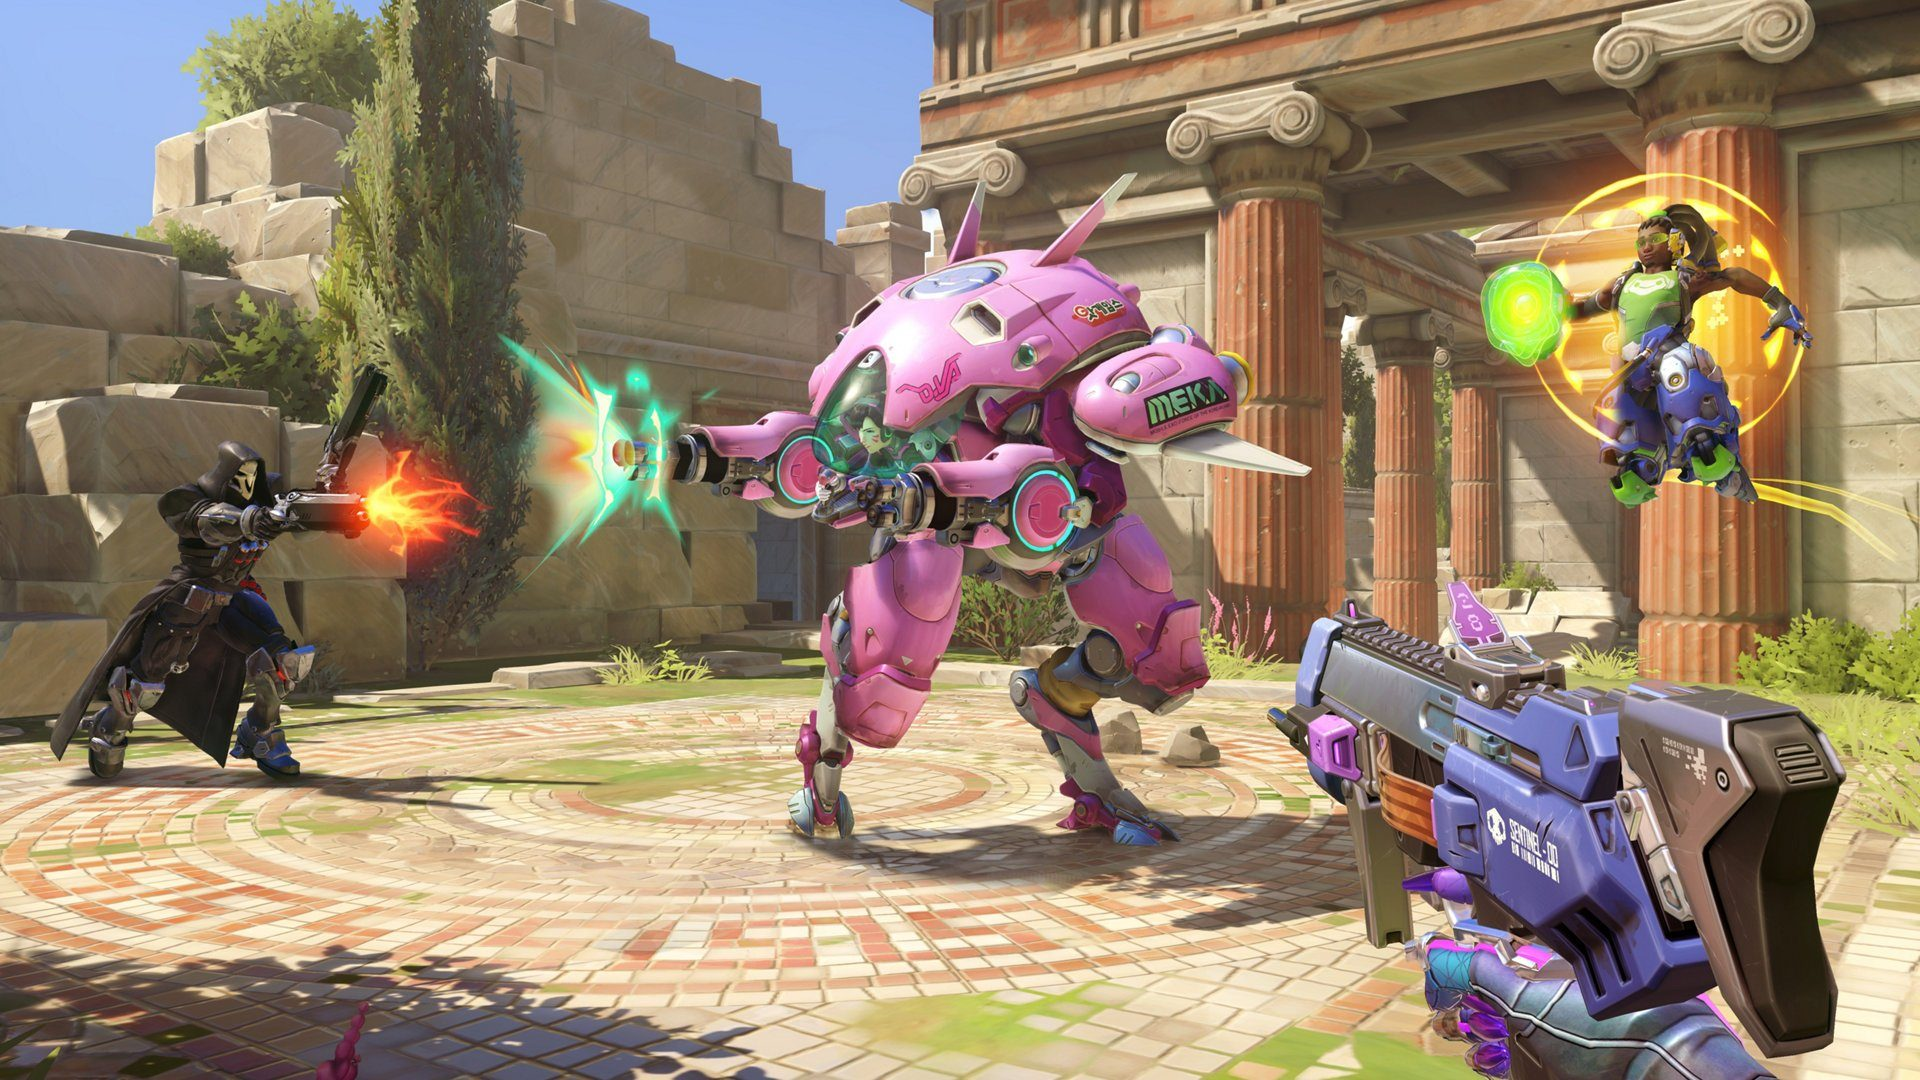 overwatch-replays-now-available-pc-ptr-public-test-realm_feature-3429370